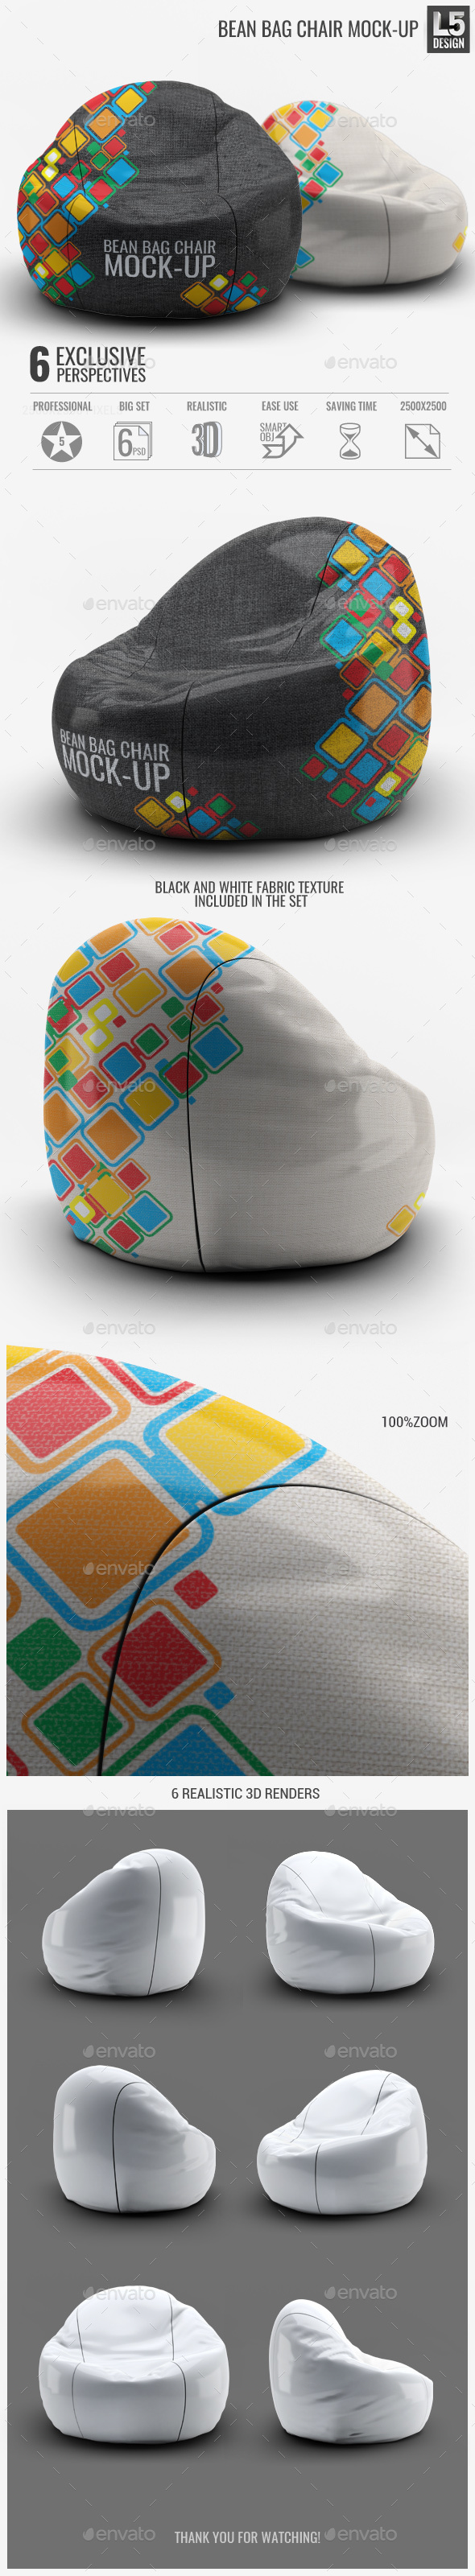 Bean Bag Chair Mock-Up - Miscellaneous Product Mock-Ups